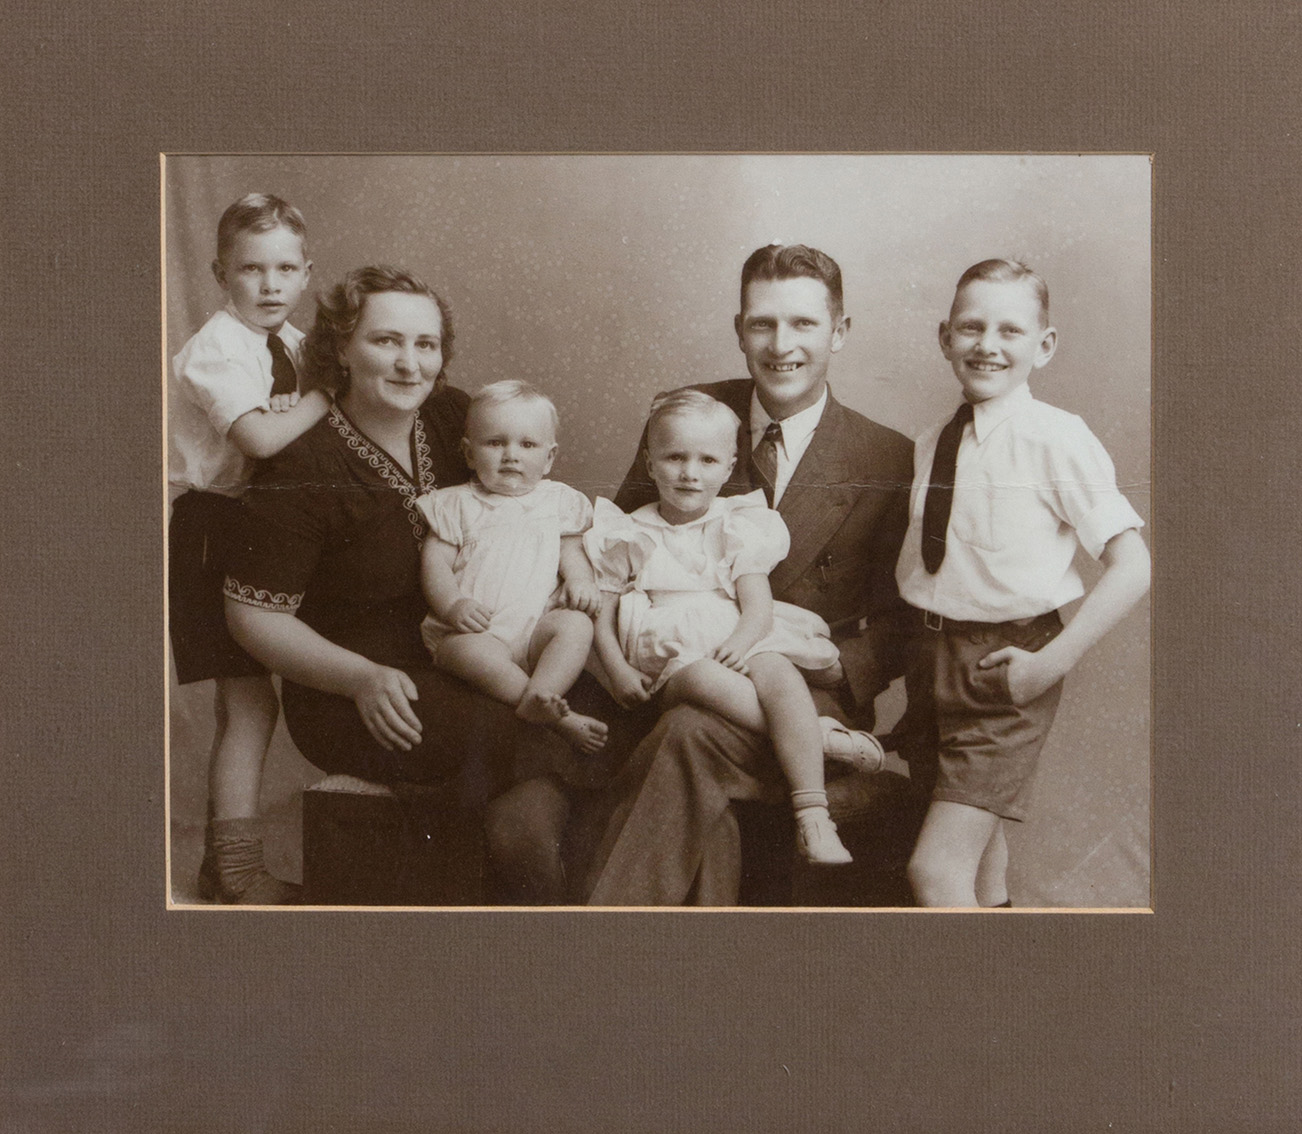 Barbara with her parents and her brothers (1948). Barbara sits on her father's lap. Mom holds Freddy, the youngest one. Ralph stands on mom's left and next to her husband, their oldest boy Patrick.